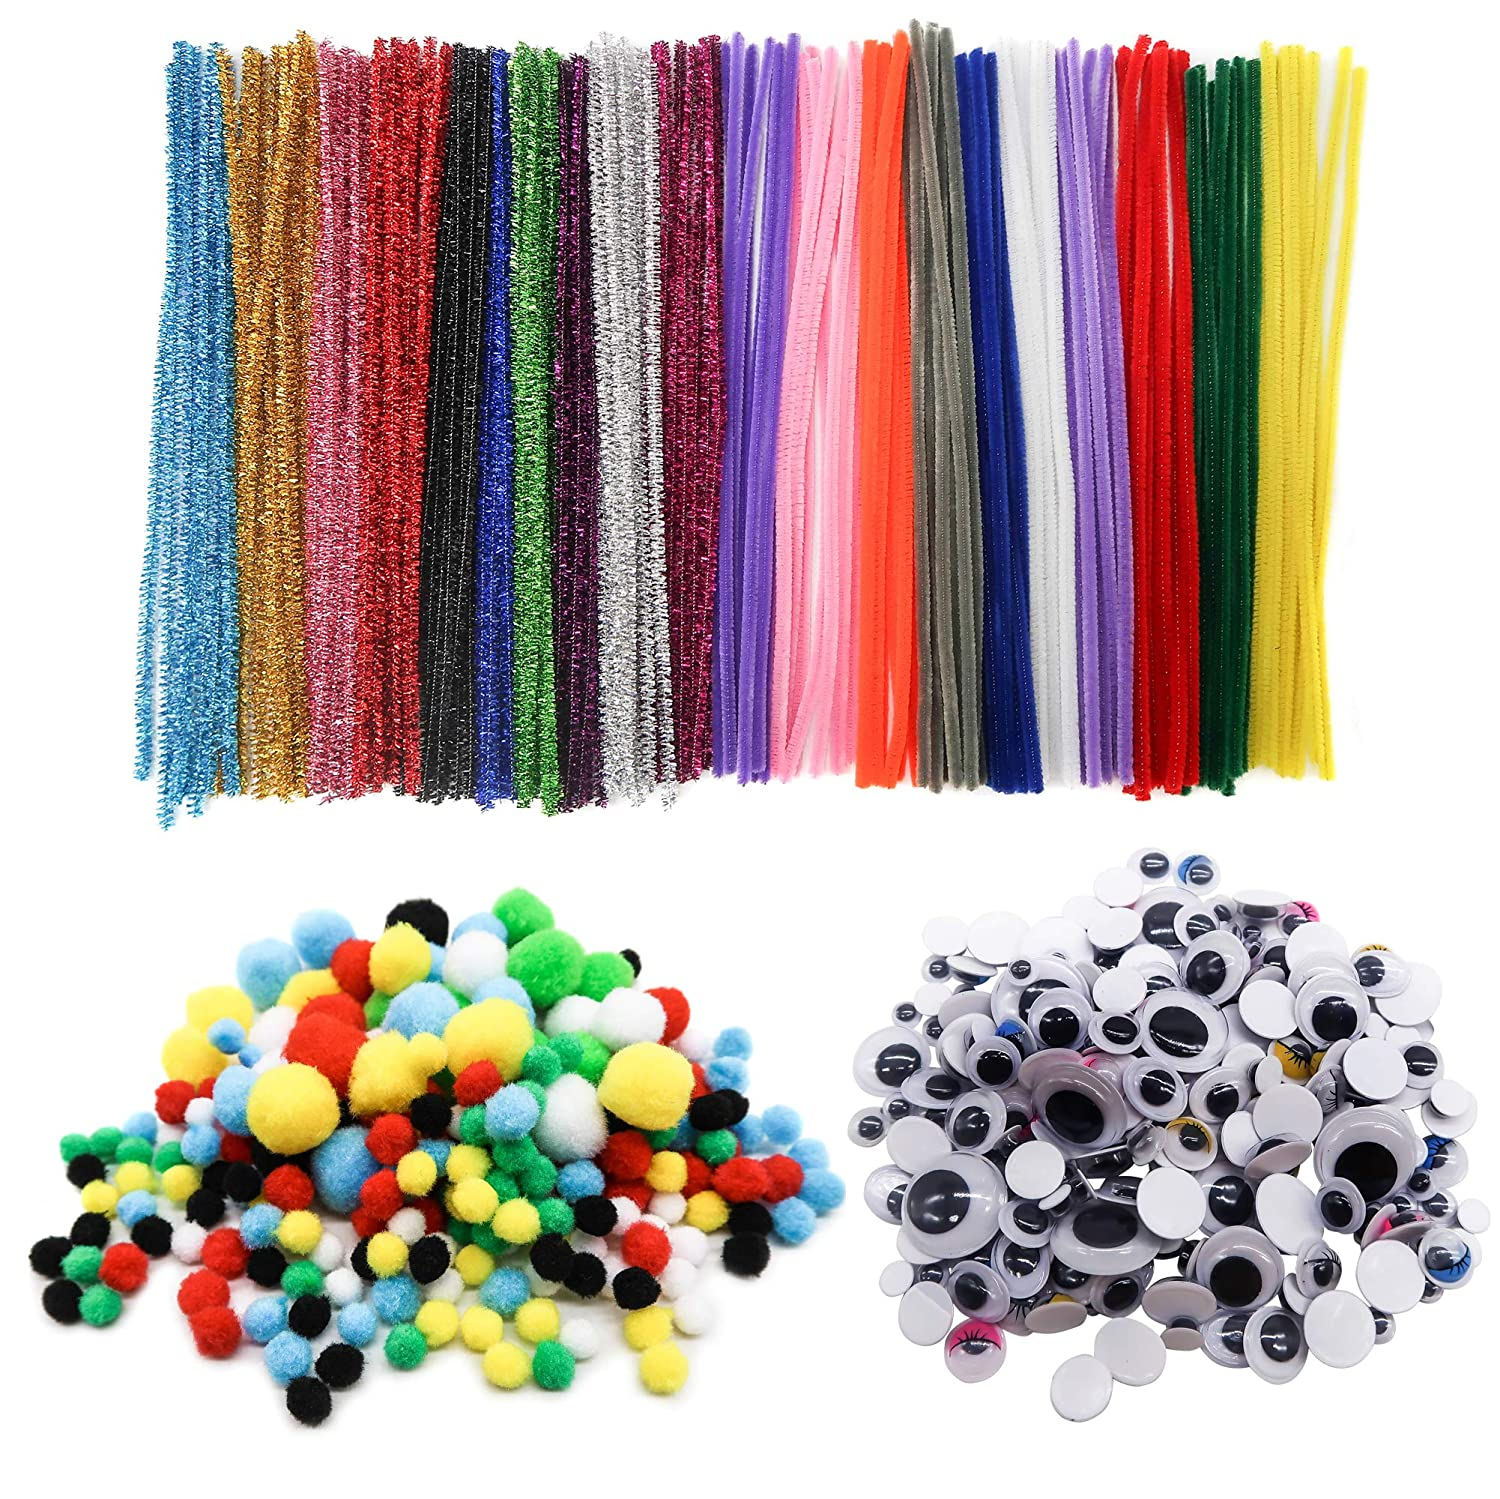 TOAOB 1150 Pieces Mini Pompons Self-Adhesive Wiggle Eyes and Pipe Cleaners Chenille Stems Set for Craft DIY Art Supplies